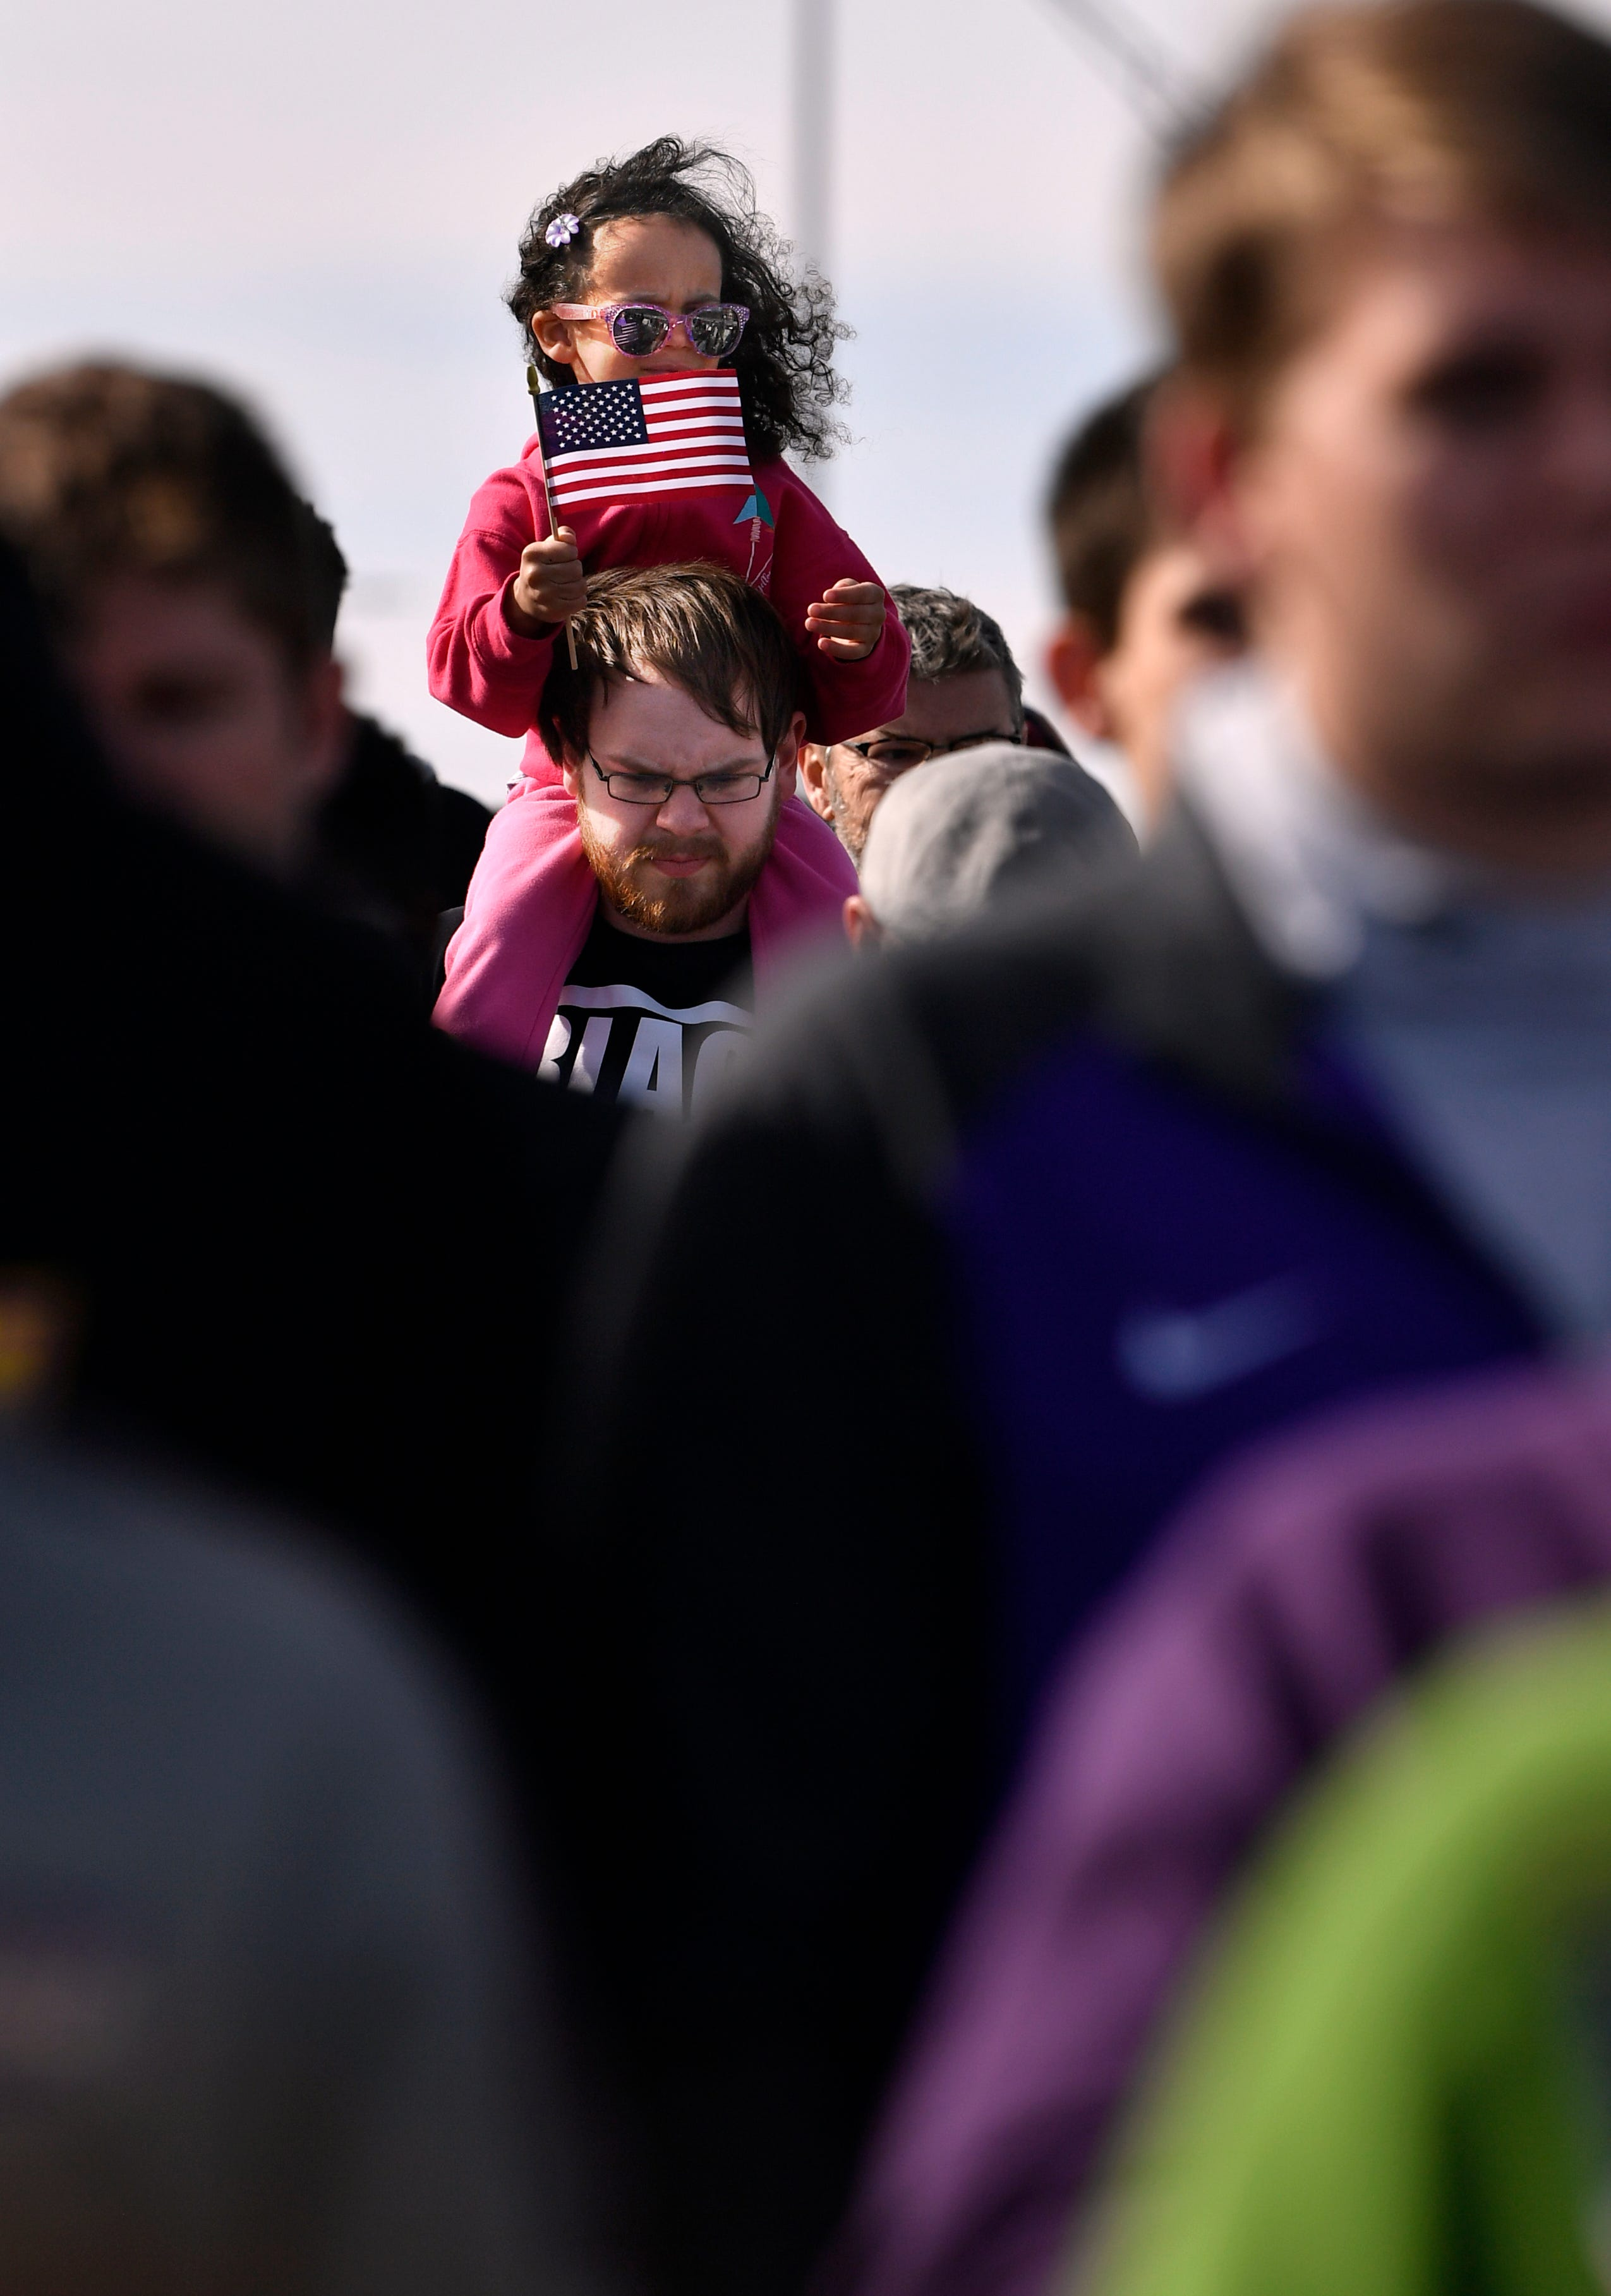 Josh Blasingame carries his daughter Amelia, 4, on his shoulders during Monday's Martin Luther King Jr. march on East Highway 80 in Abilene. About 1,000 gathered to honor King's legacy.